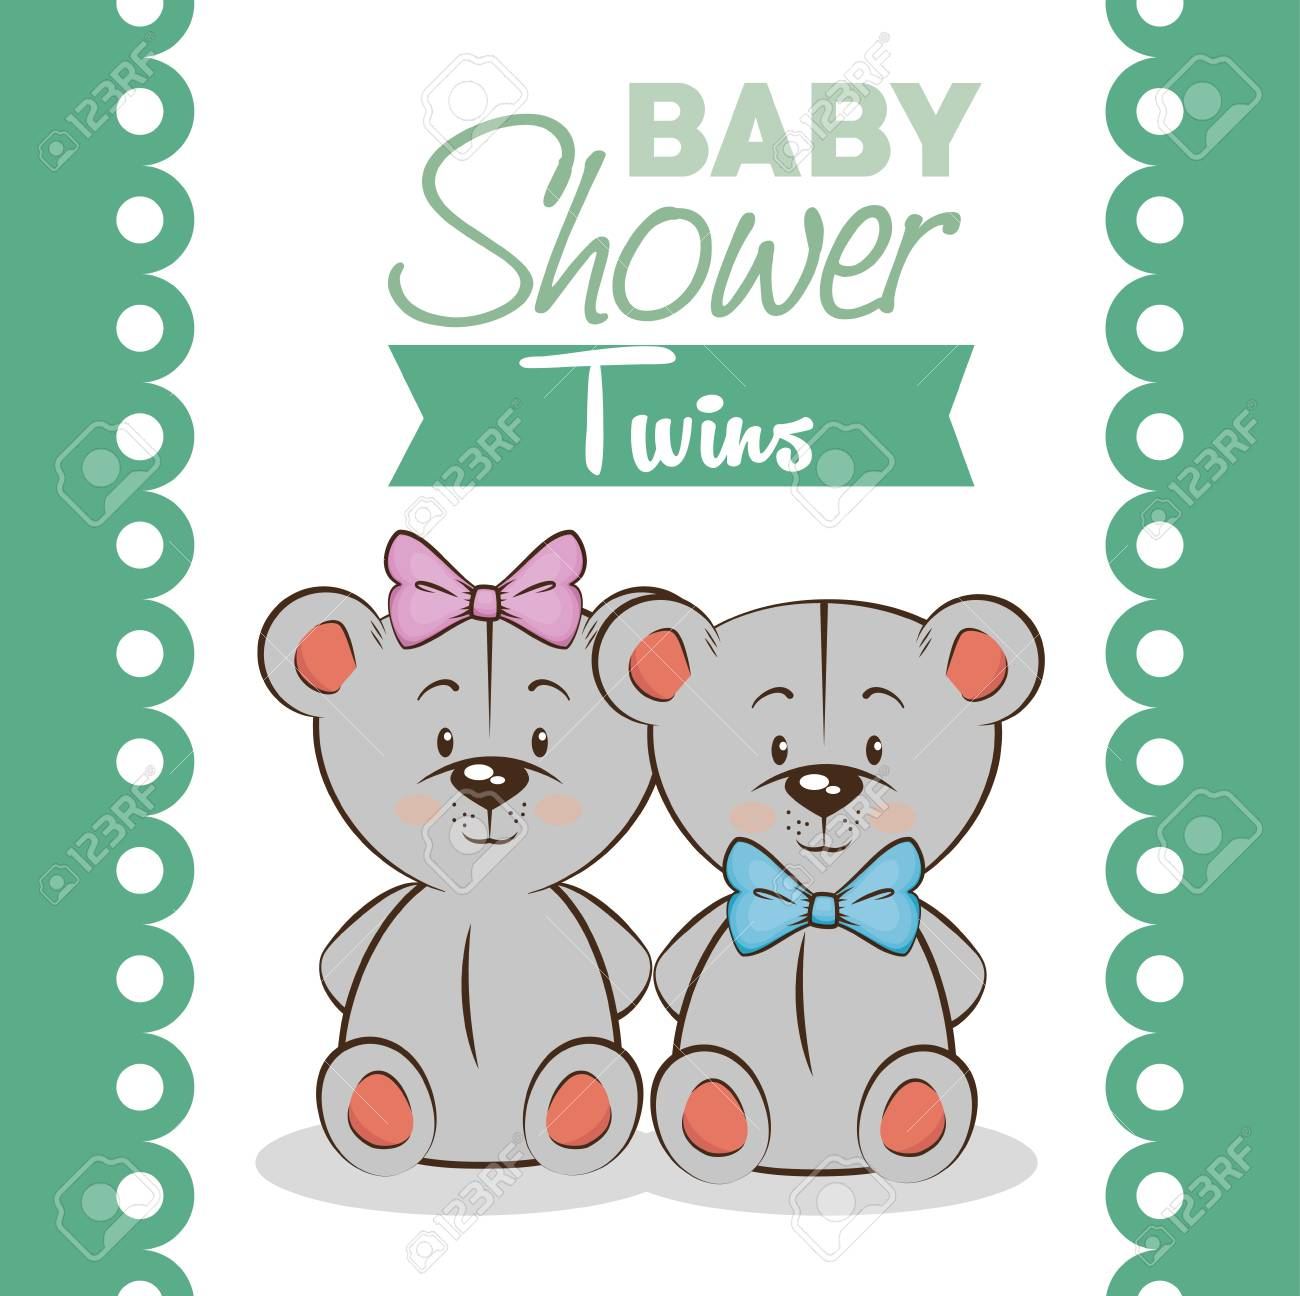 Baby shower twins invitation card vector illustration graphic baby shower twins invitation card vector illustration graphic design stock vector 80980985 filmwisefo